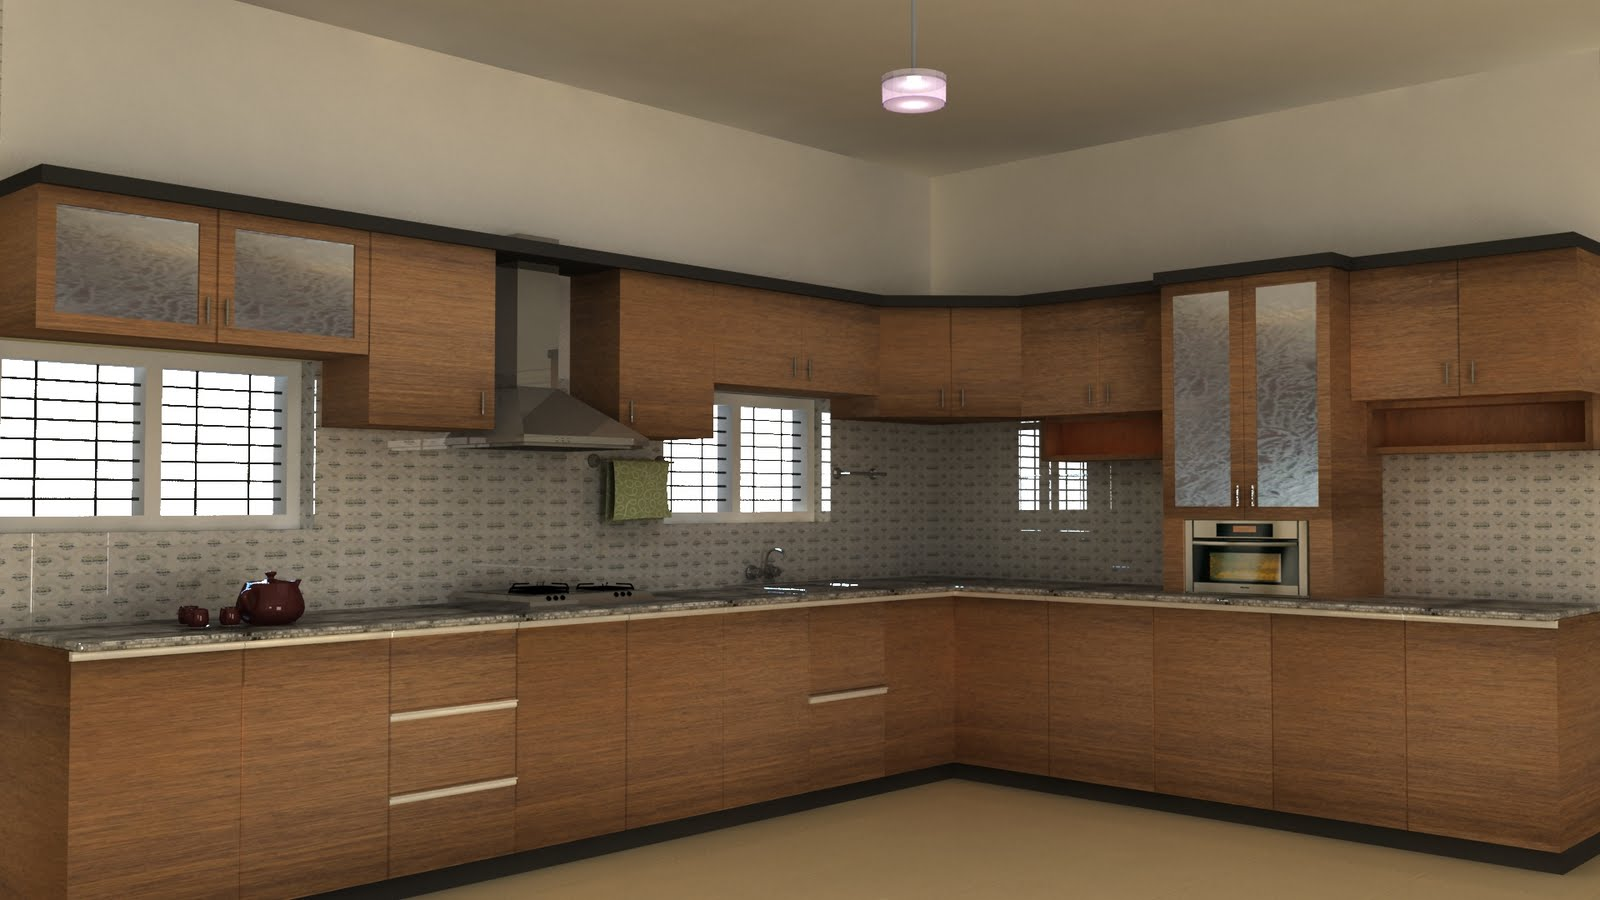 Architectural designing kitchen interiors - Kitchen interior designing ...